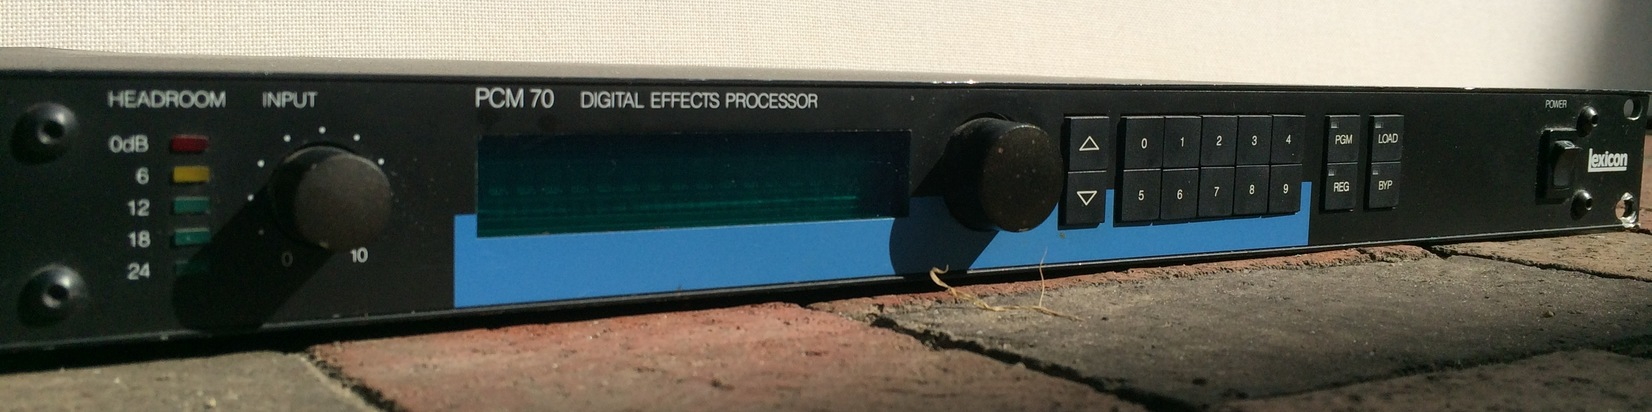 Lexicon PCM 70 Digital Effects Processor Used